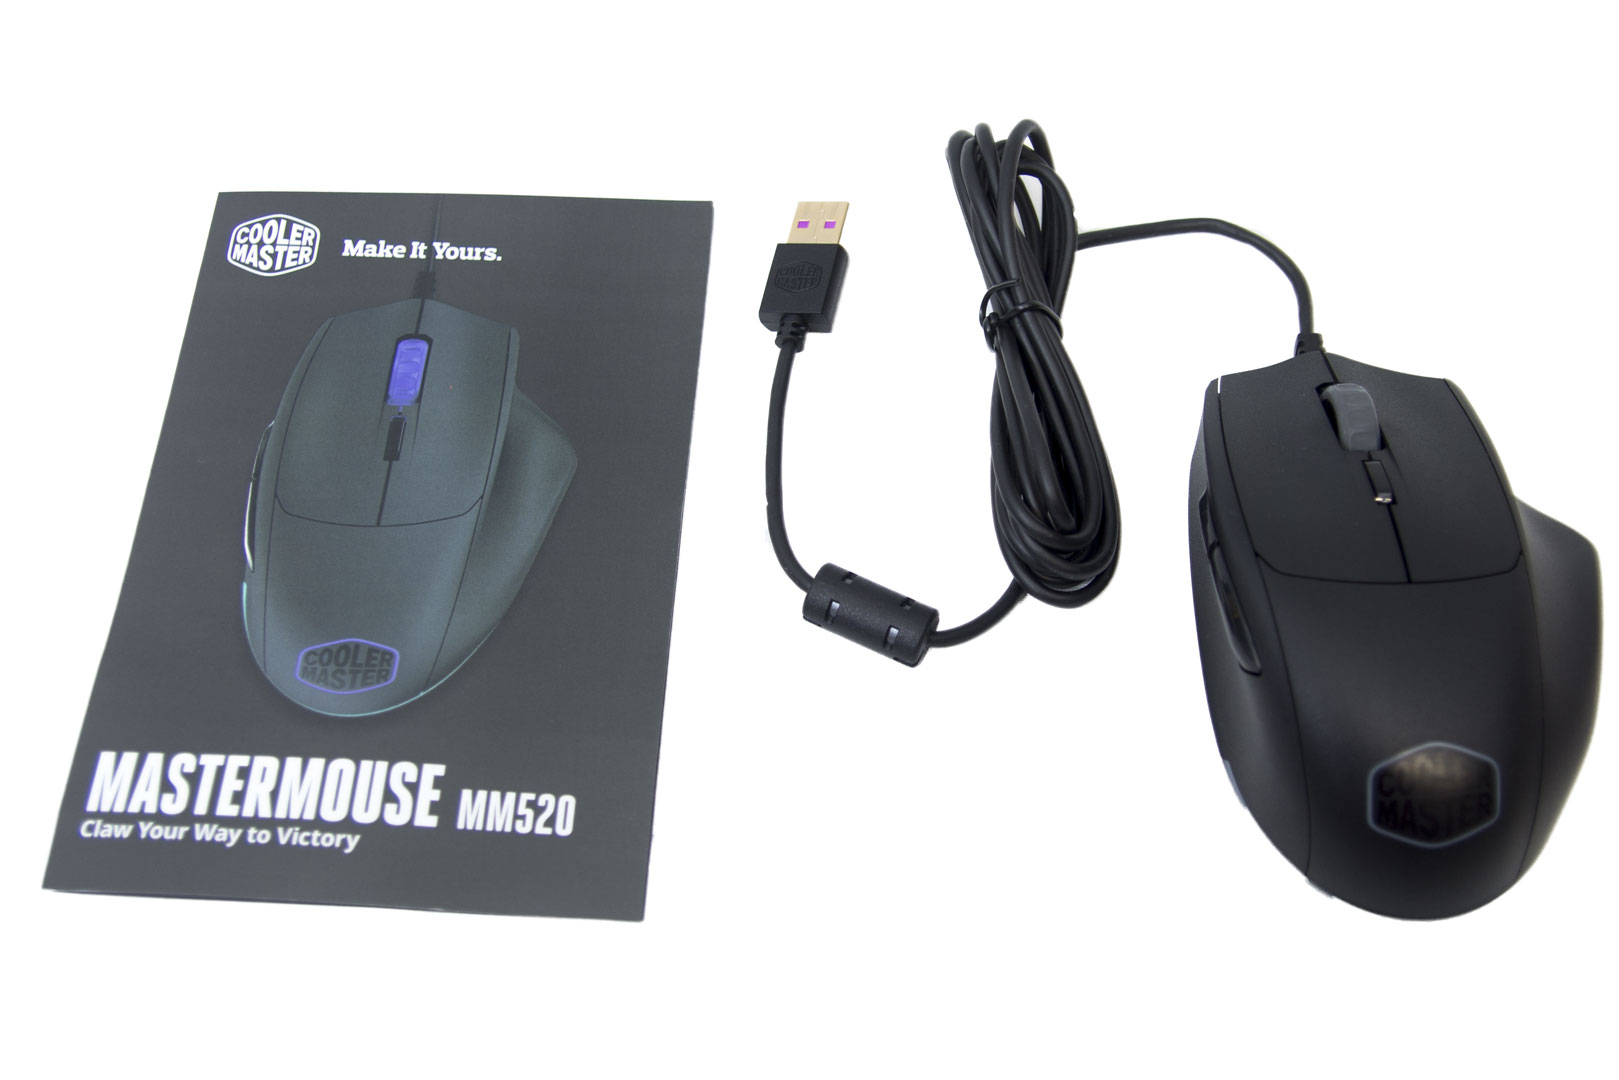 bf07dd393d5 First, let's take a look at the MasterMouse MM520. Upon opening the  packaging, there are only the basics; the mouse and a user guide.